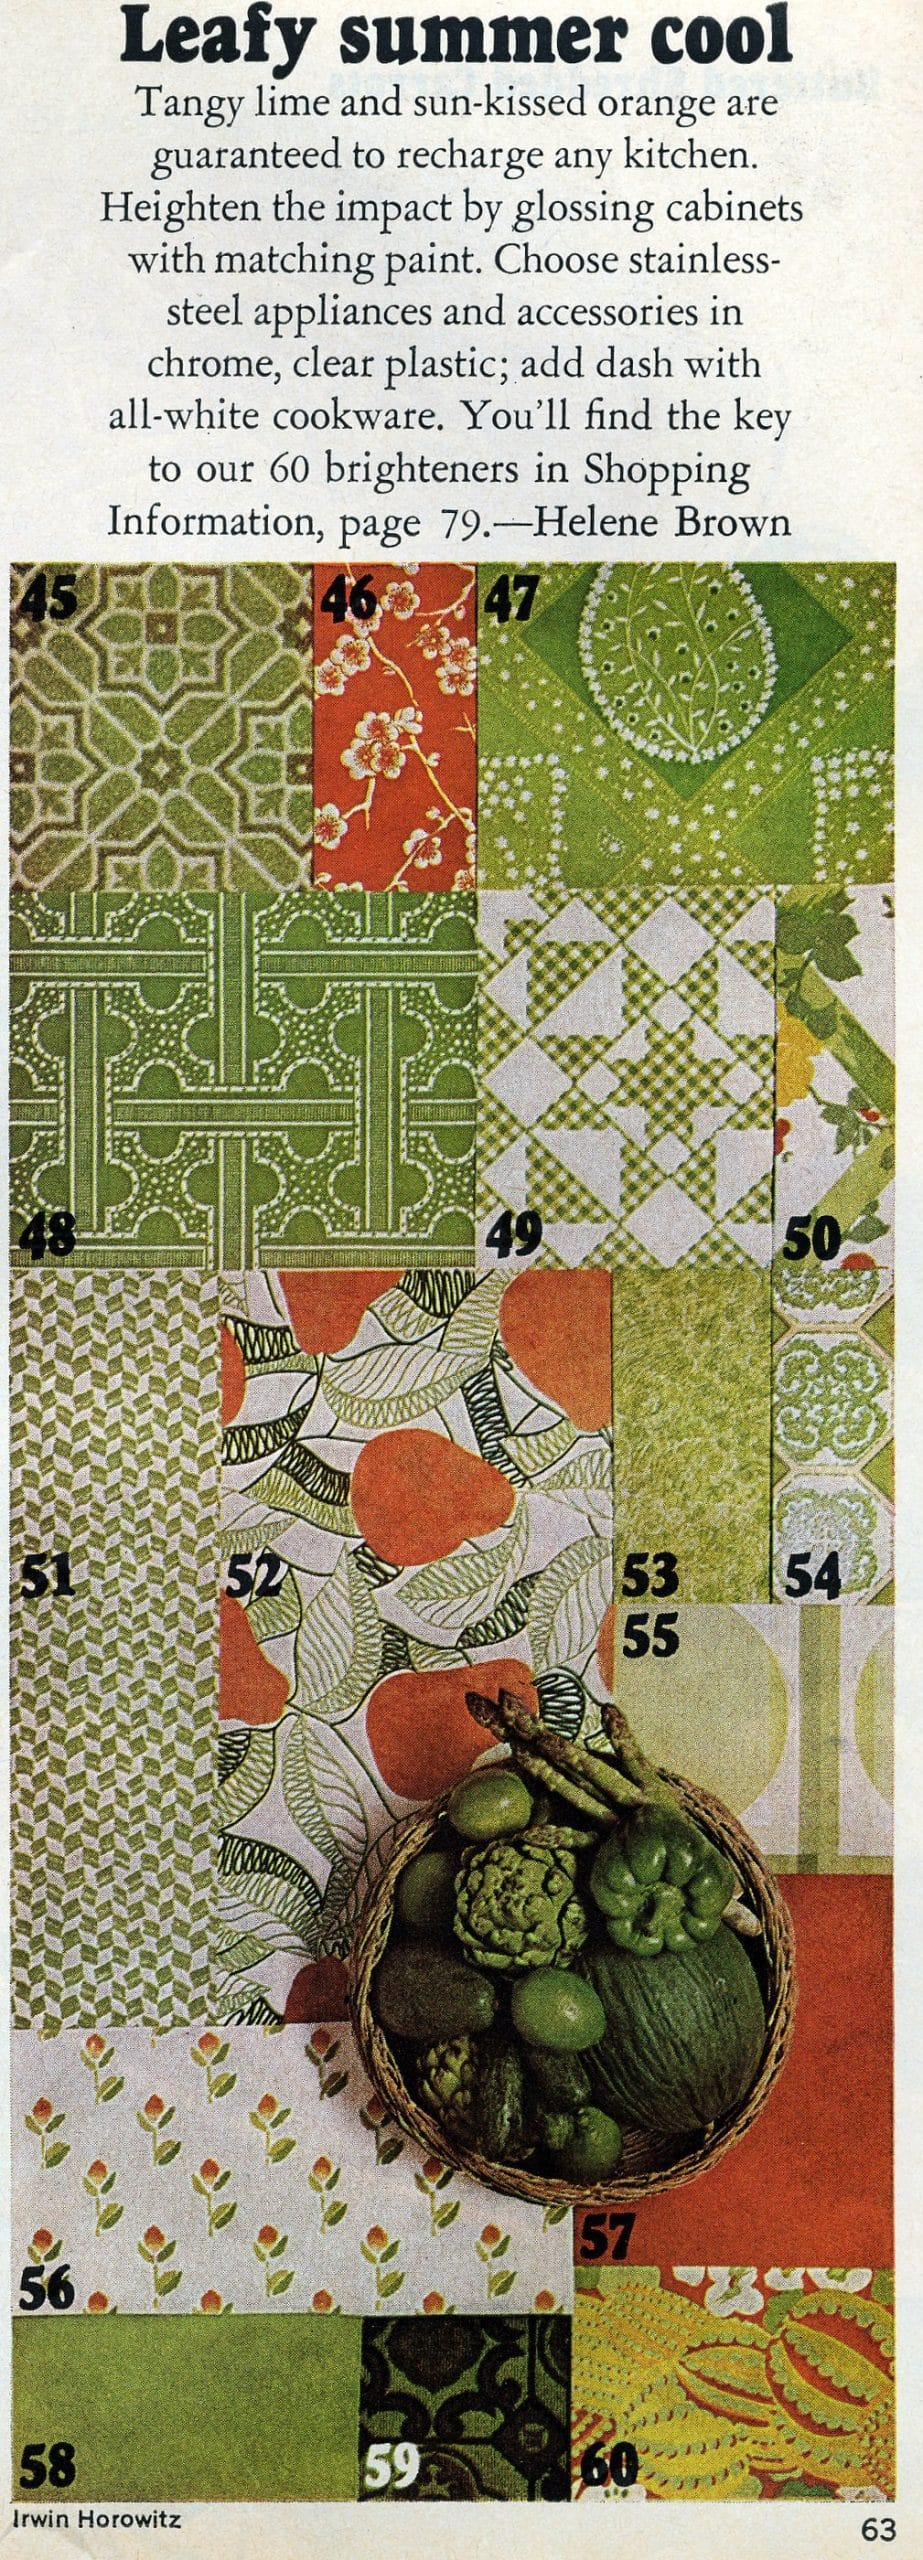 Vintage 1970s kitchen decor colors and patterns - Leafy summer cool